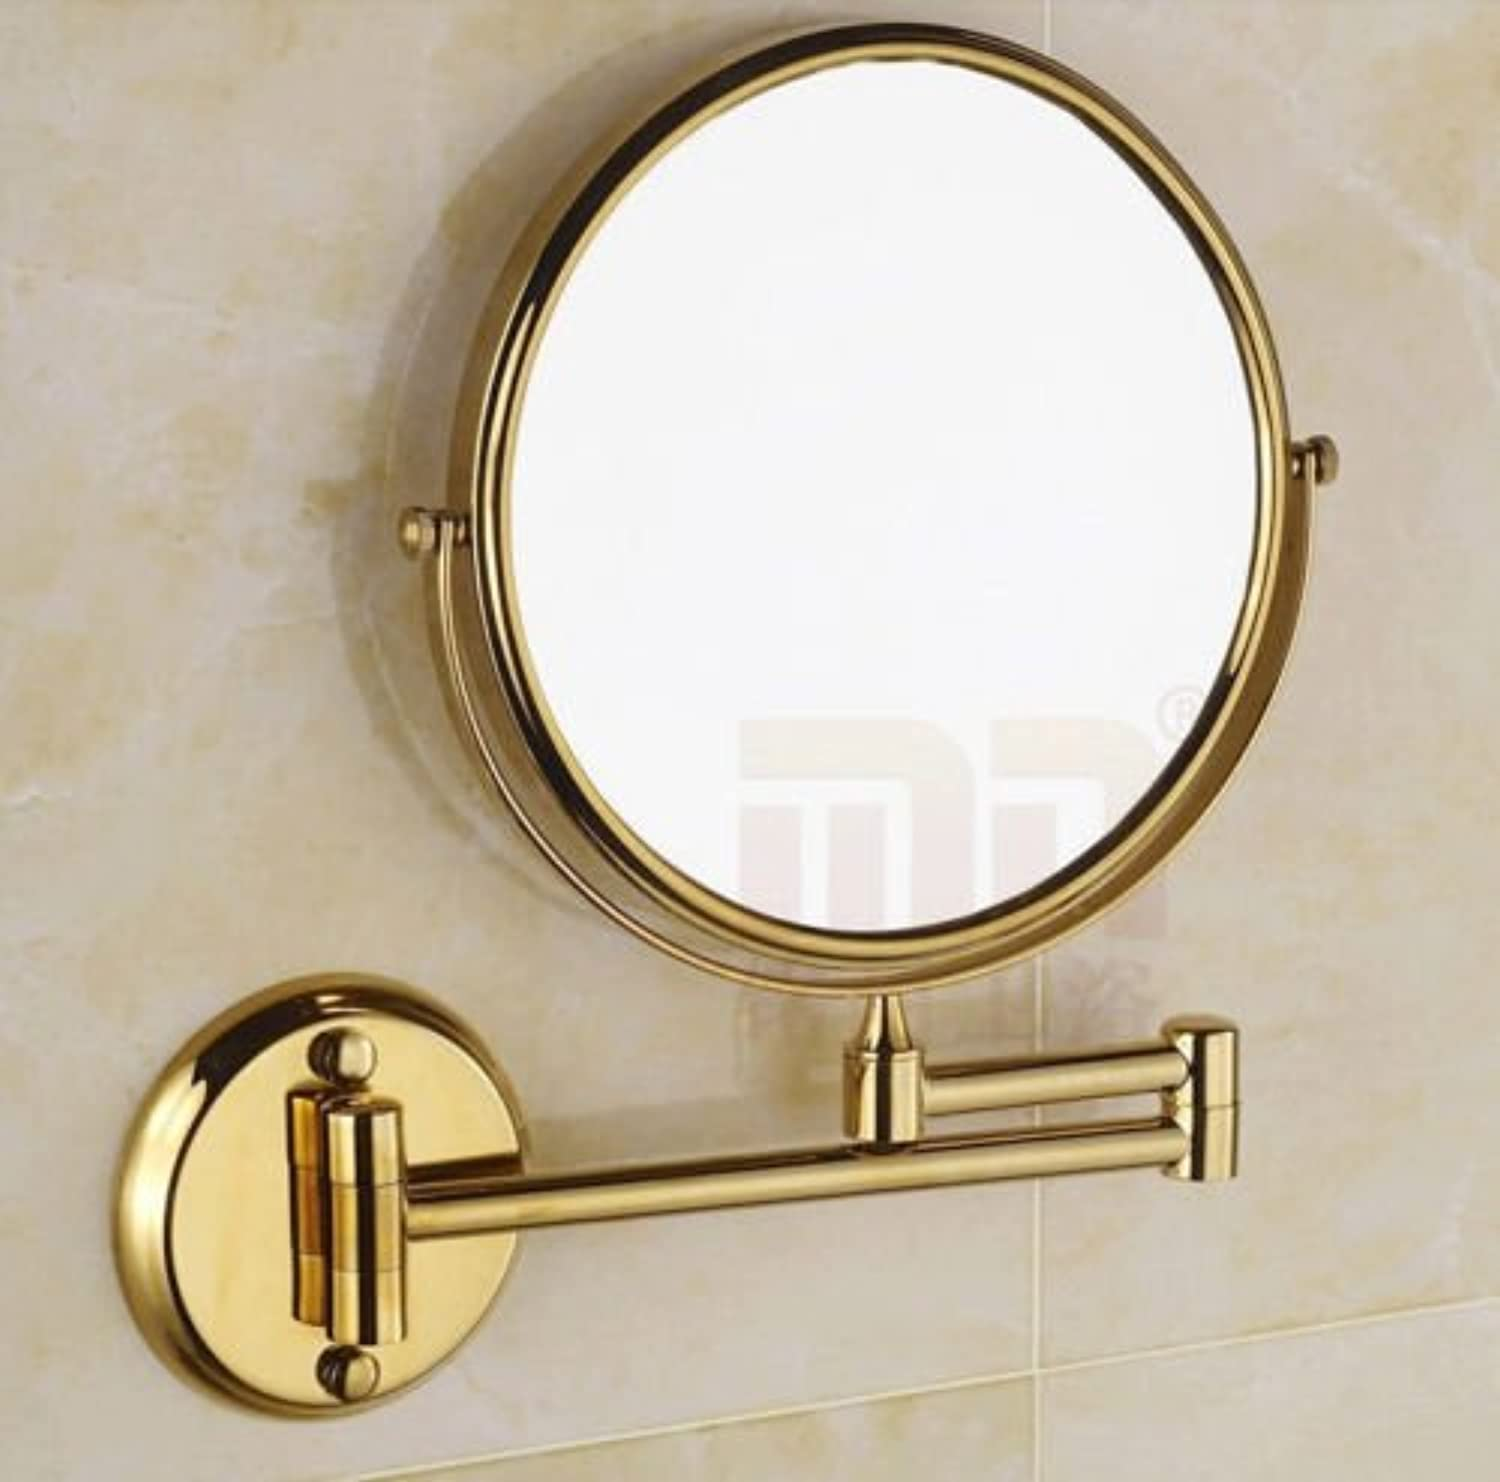 Makeup Mirror,Bathroom gold Finish 3X Magnifying Dual Sides Wall Mounted